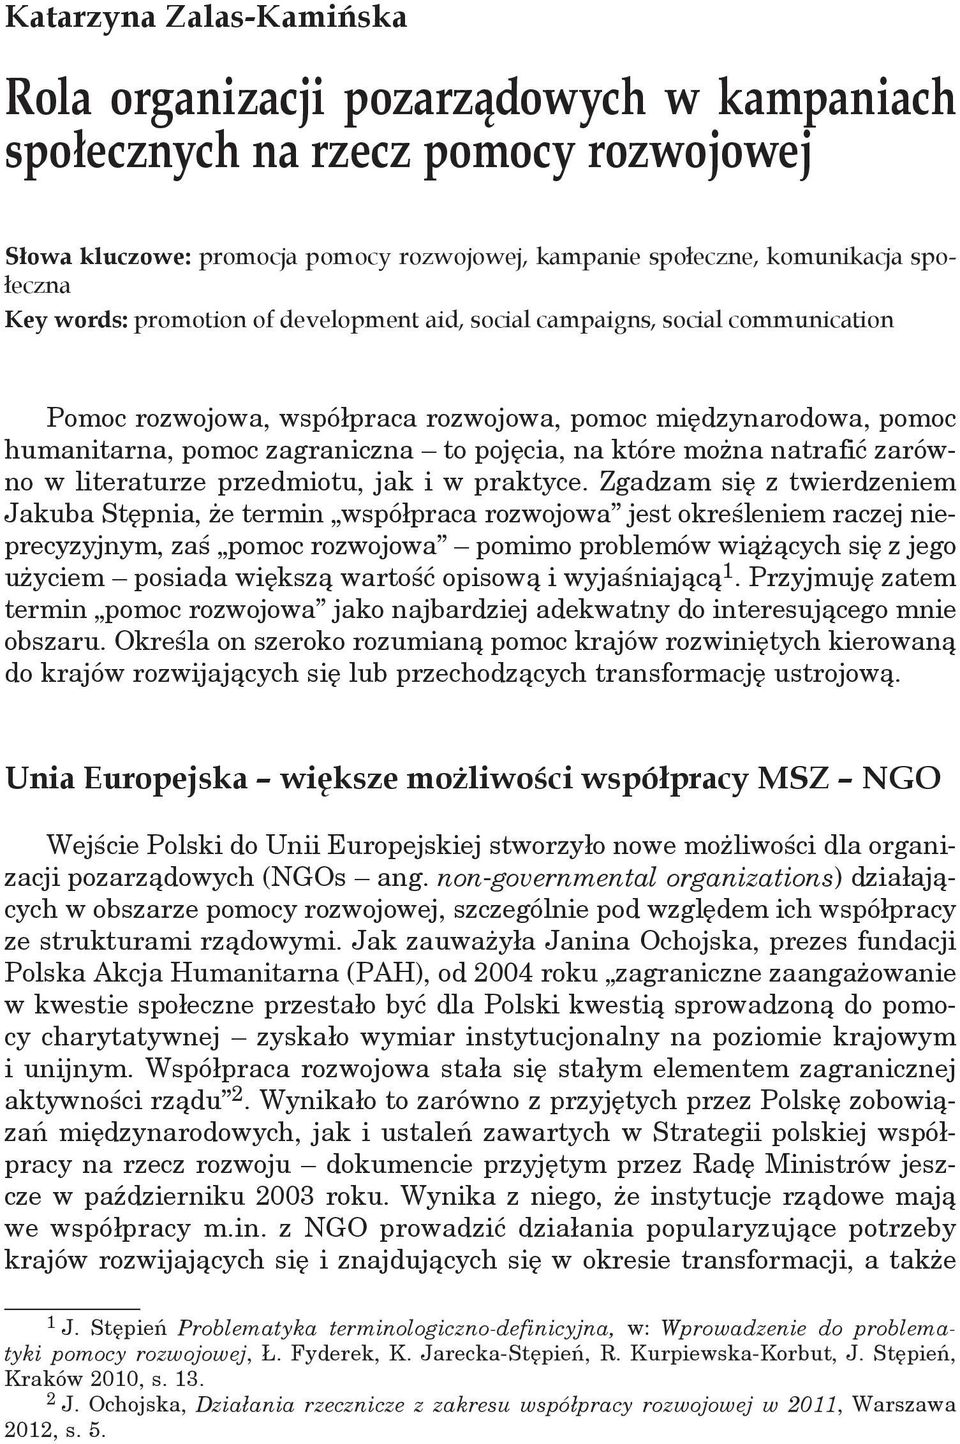 Key words: promotion of development aid, social campaigns, social communication Pomoc rozwojowa, współpraca rozwojowa, pomoc międzynarodowa, pomoc humanitarna, pomoc zagraniczna to pojęcia, na które